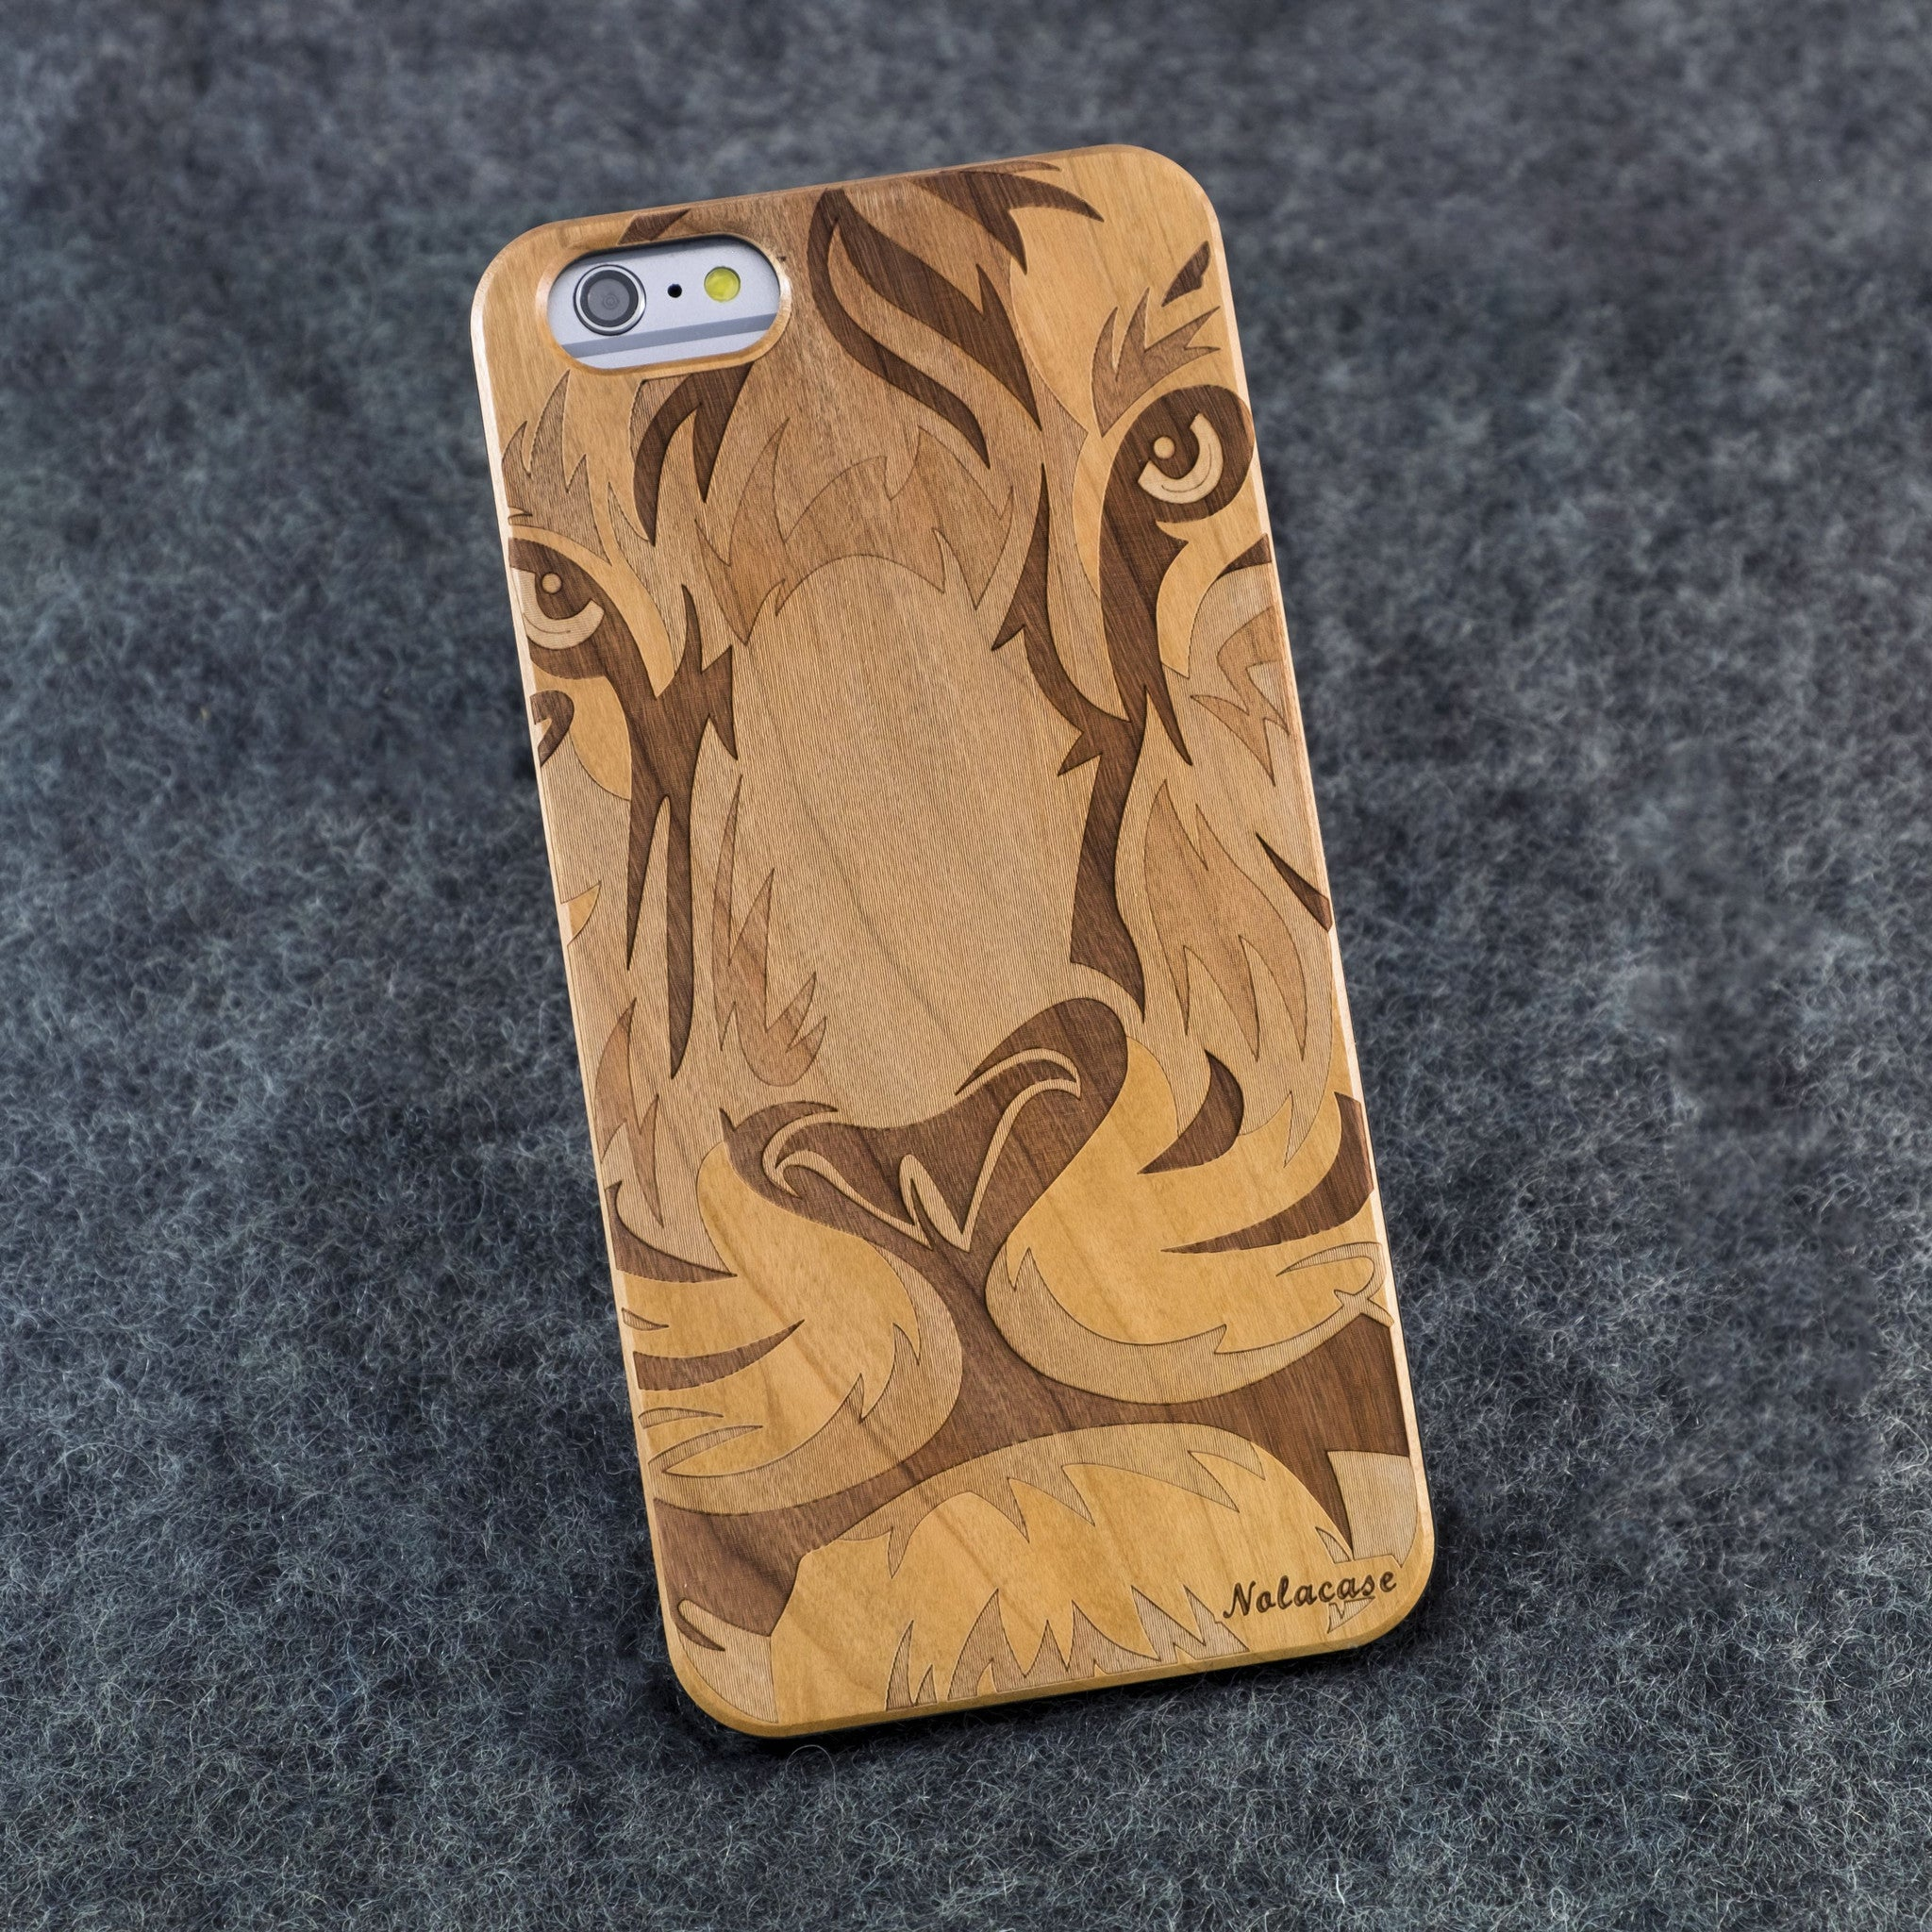 iPhone 6+ Lion Face Slim Wood Case - NOLACASE